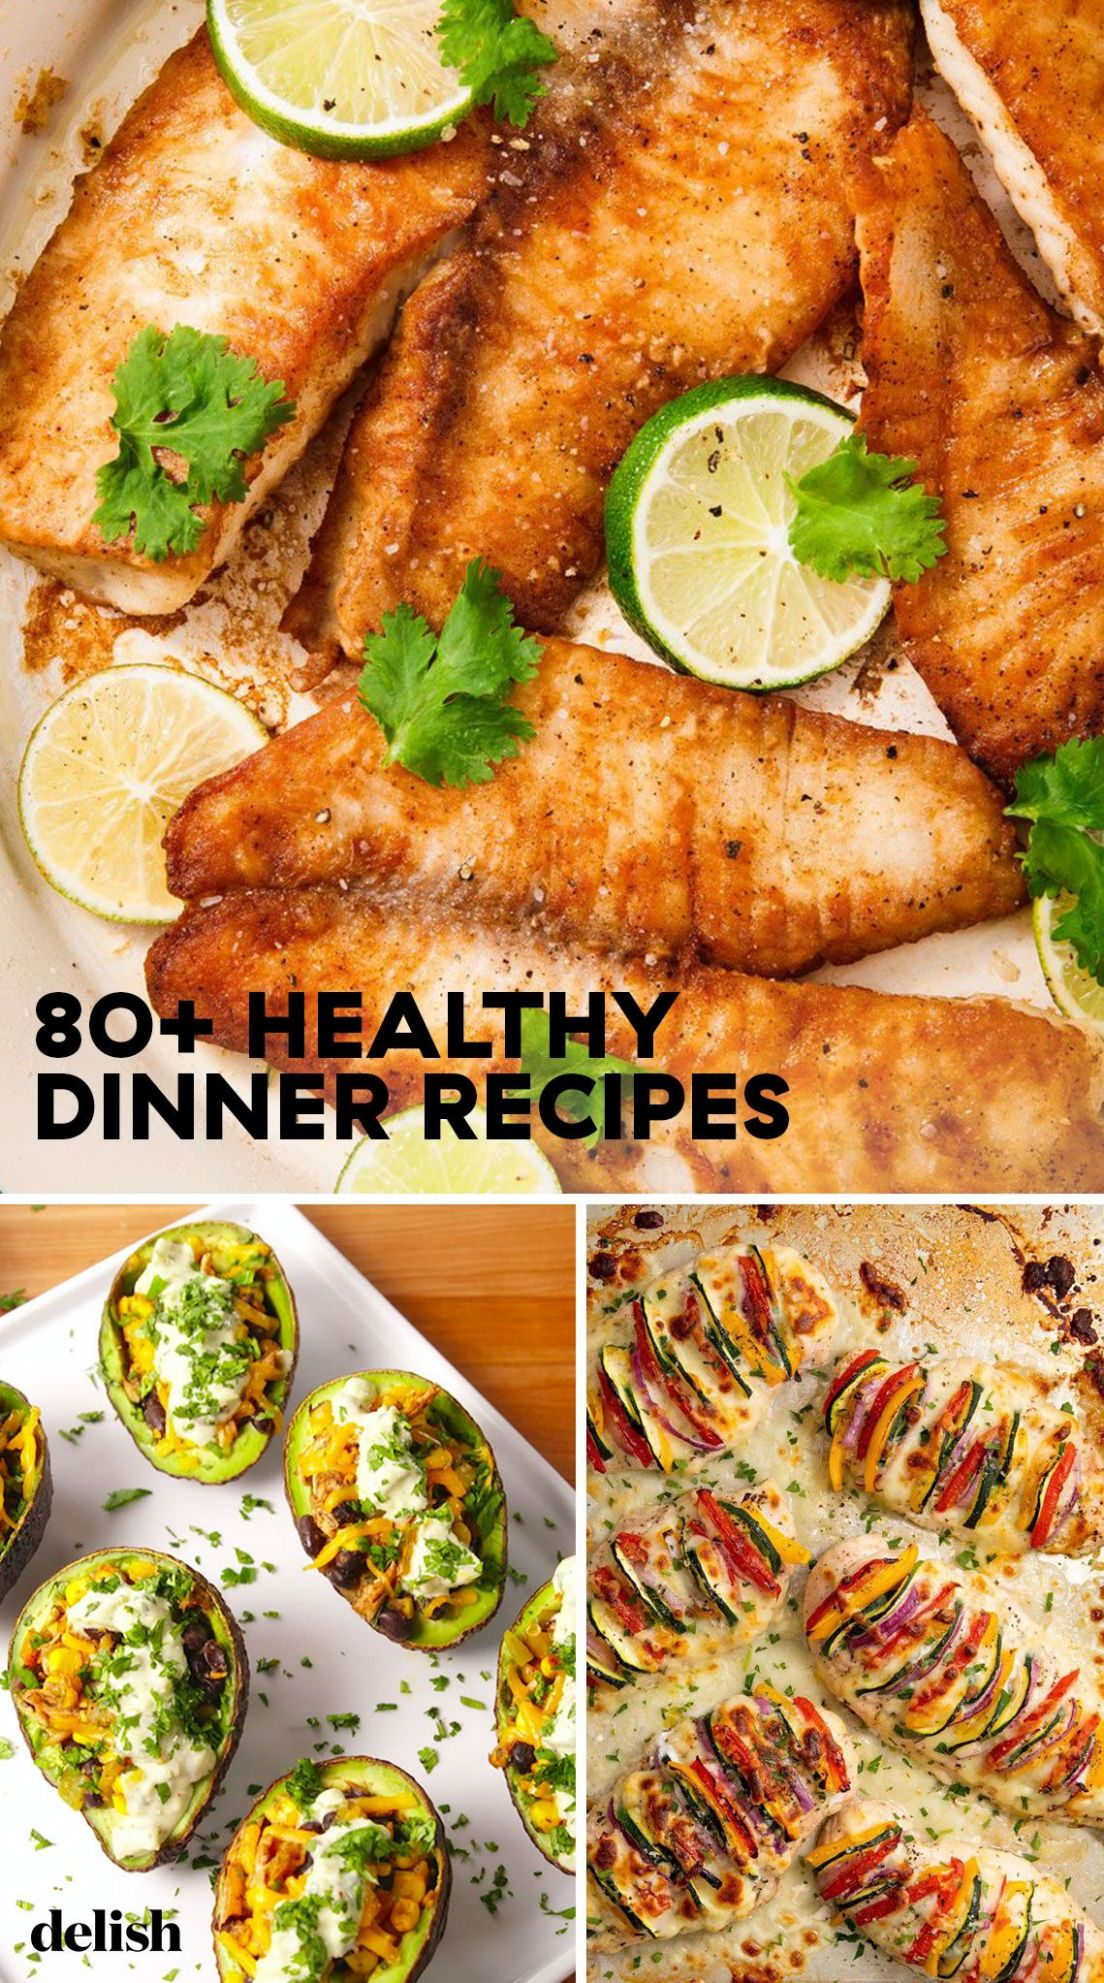 12+ Easy Healthy Dinner Ideas - Best Recipes for Healthy Dinners - Healthy Recipes Yummy